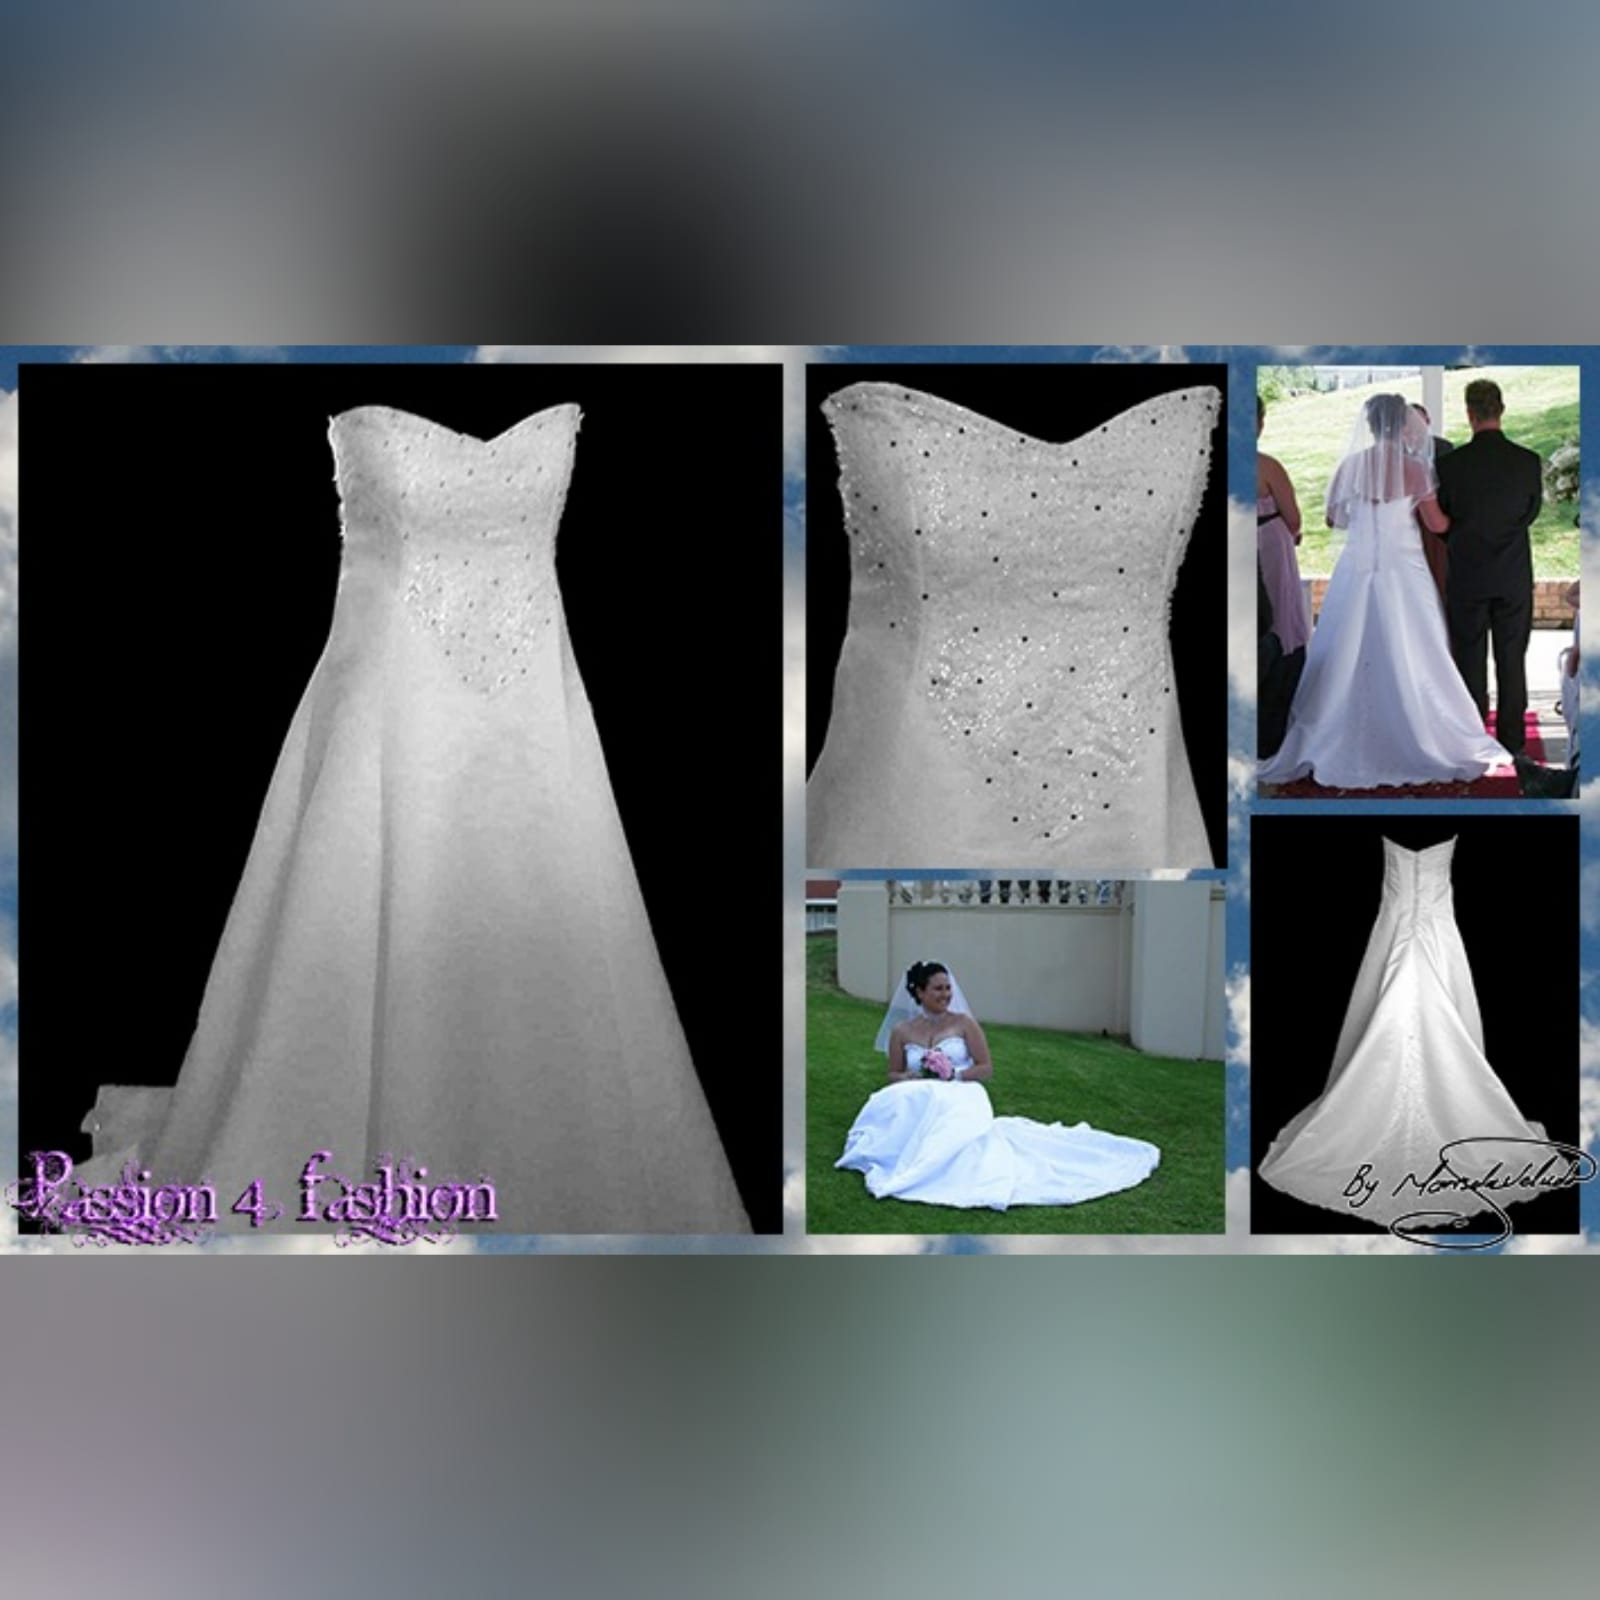 White & glitter ball gown wedding dress 7 white & glitter ball gown wedding dress. Bodice detailed with silver detail and beads. Falling to the ballgown. Back detailed with silver covered buttons.